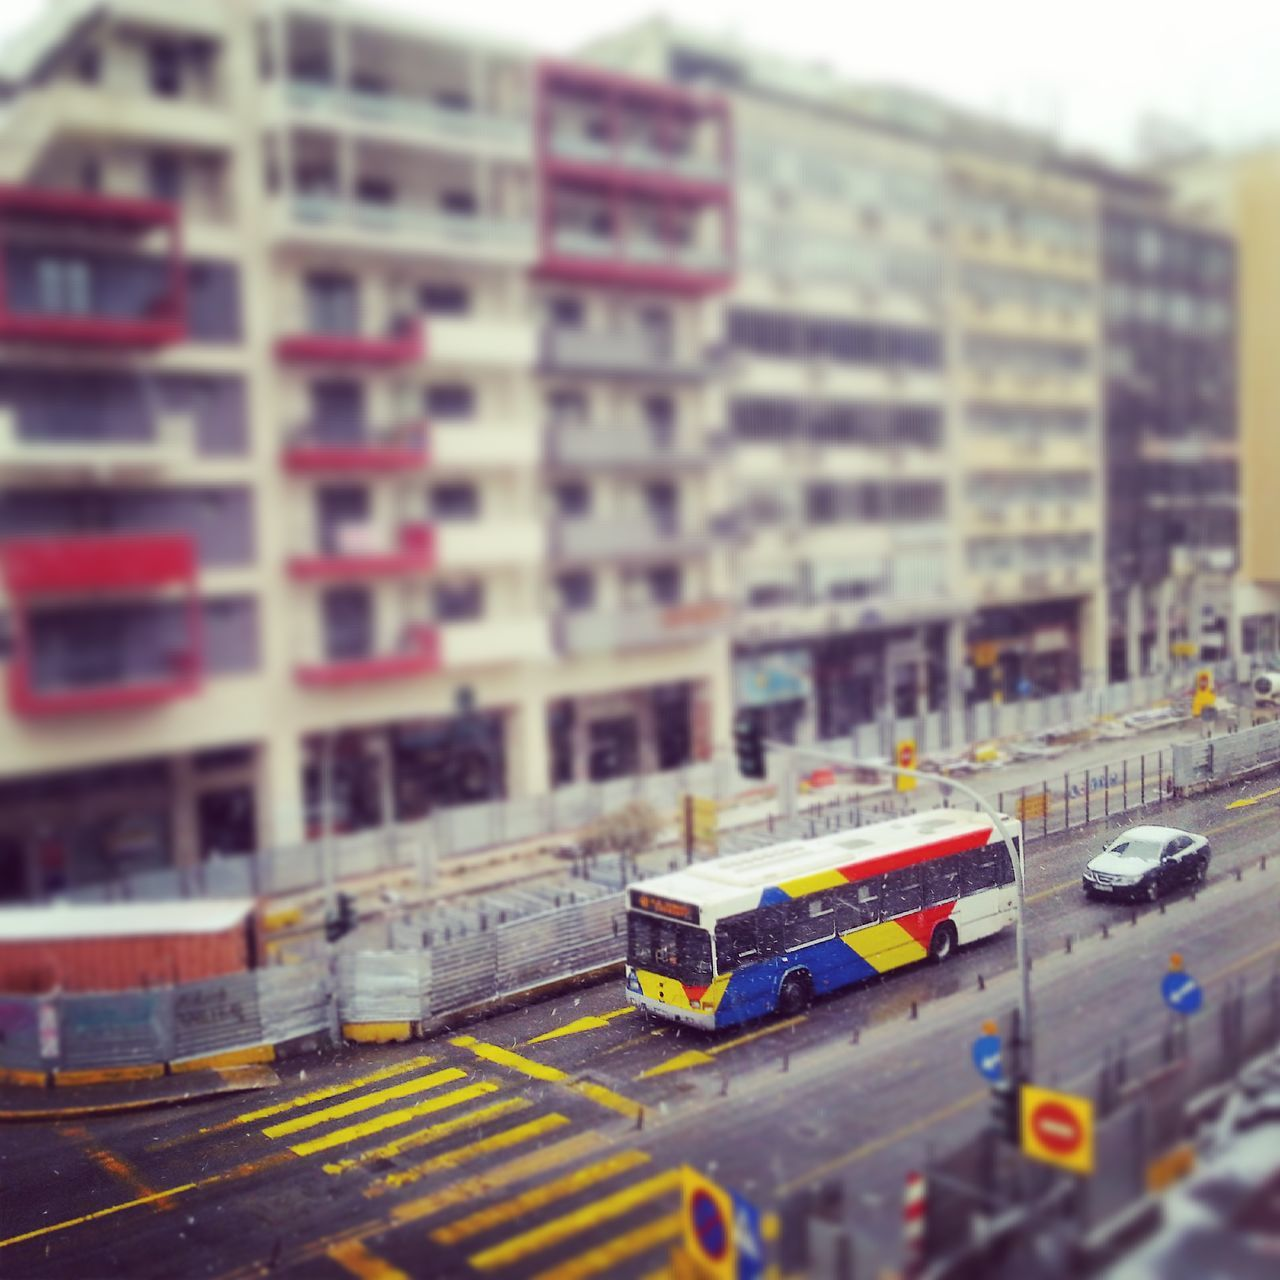 Bus on city street